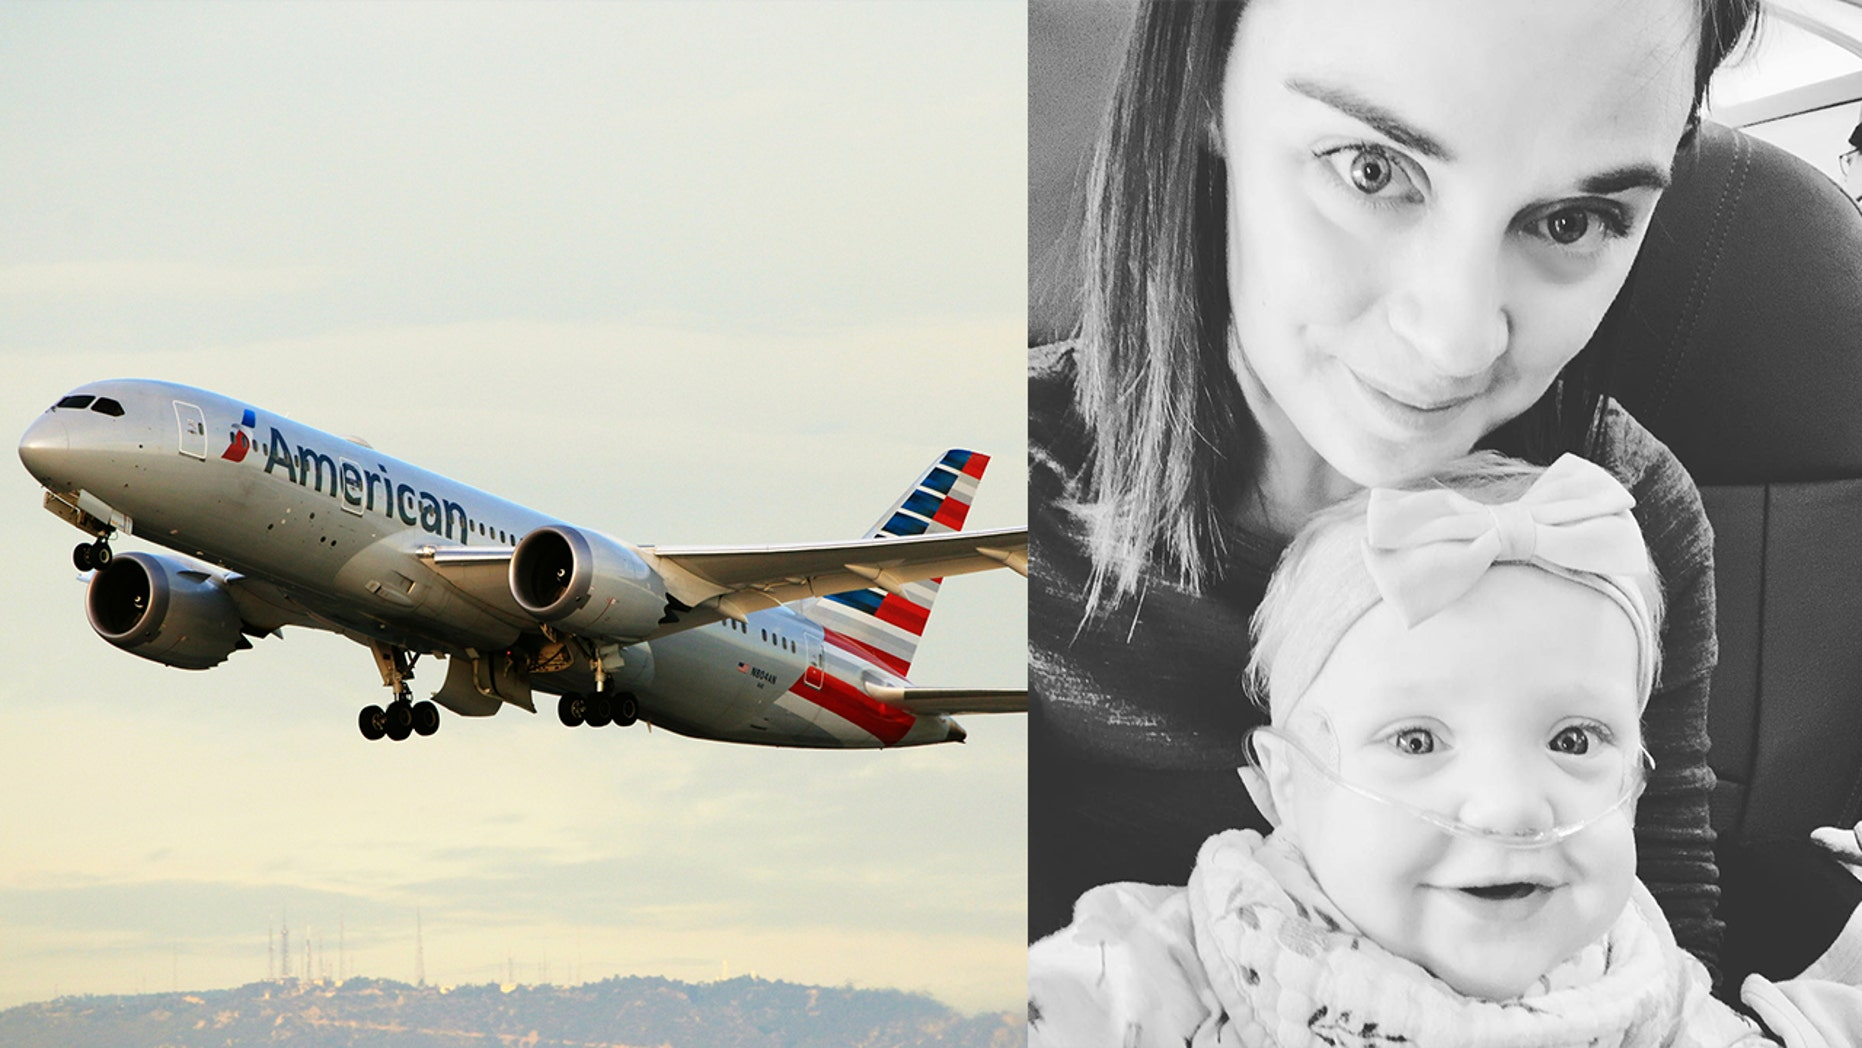 American Airlines Passenger Who Gave Up First Class Seat